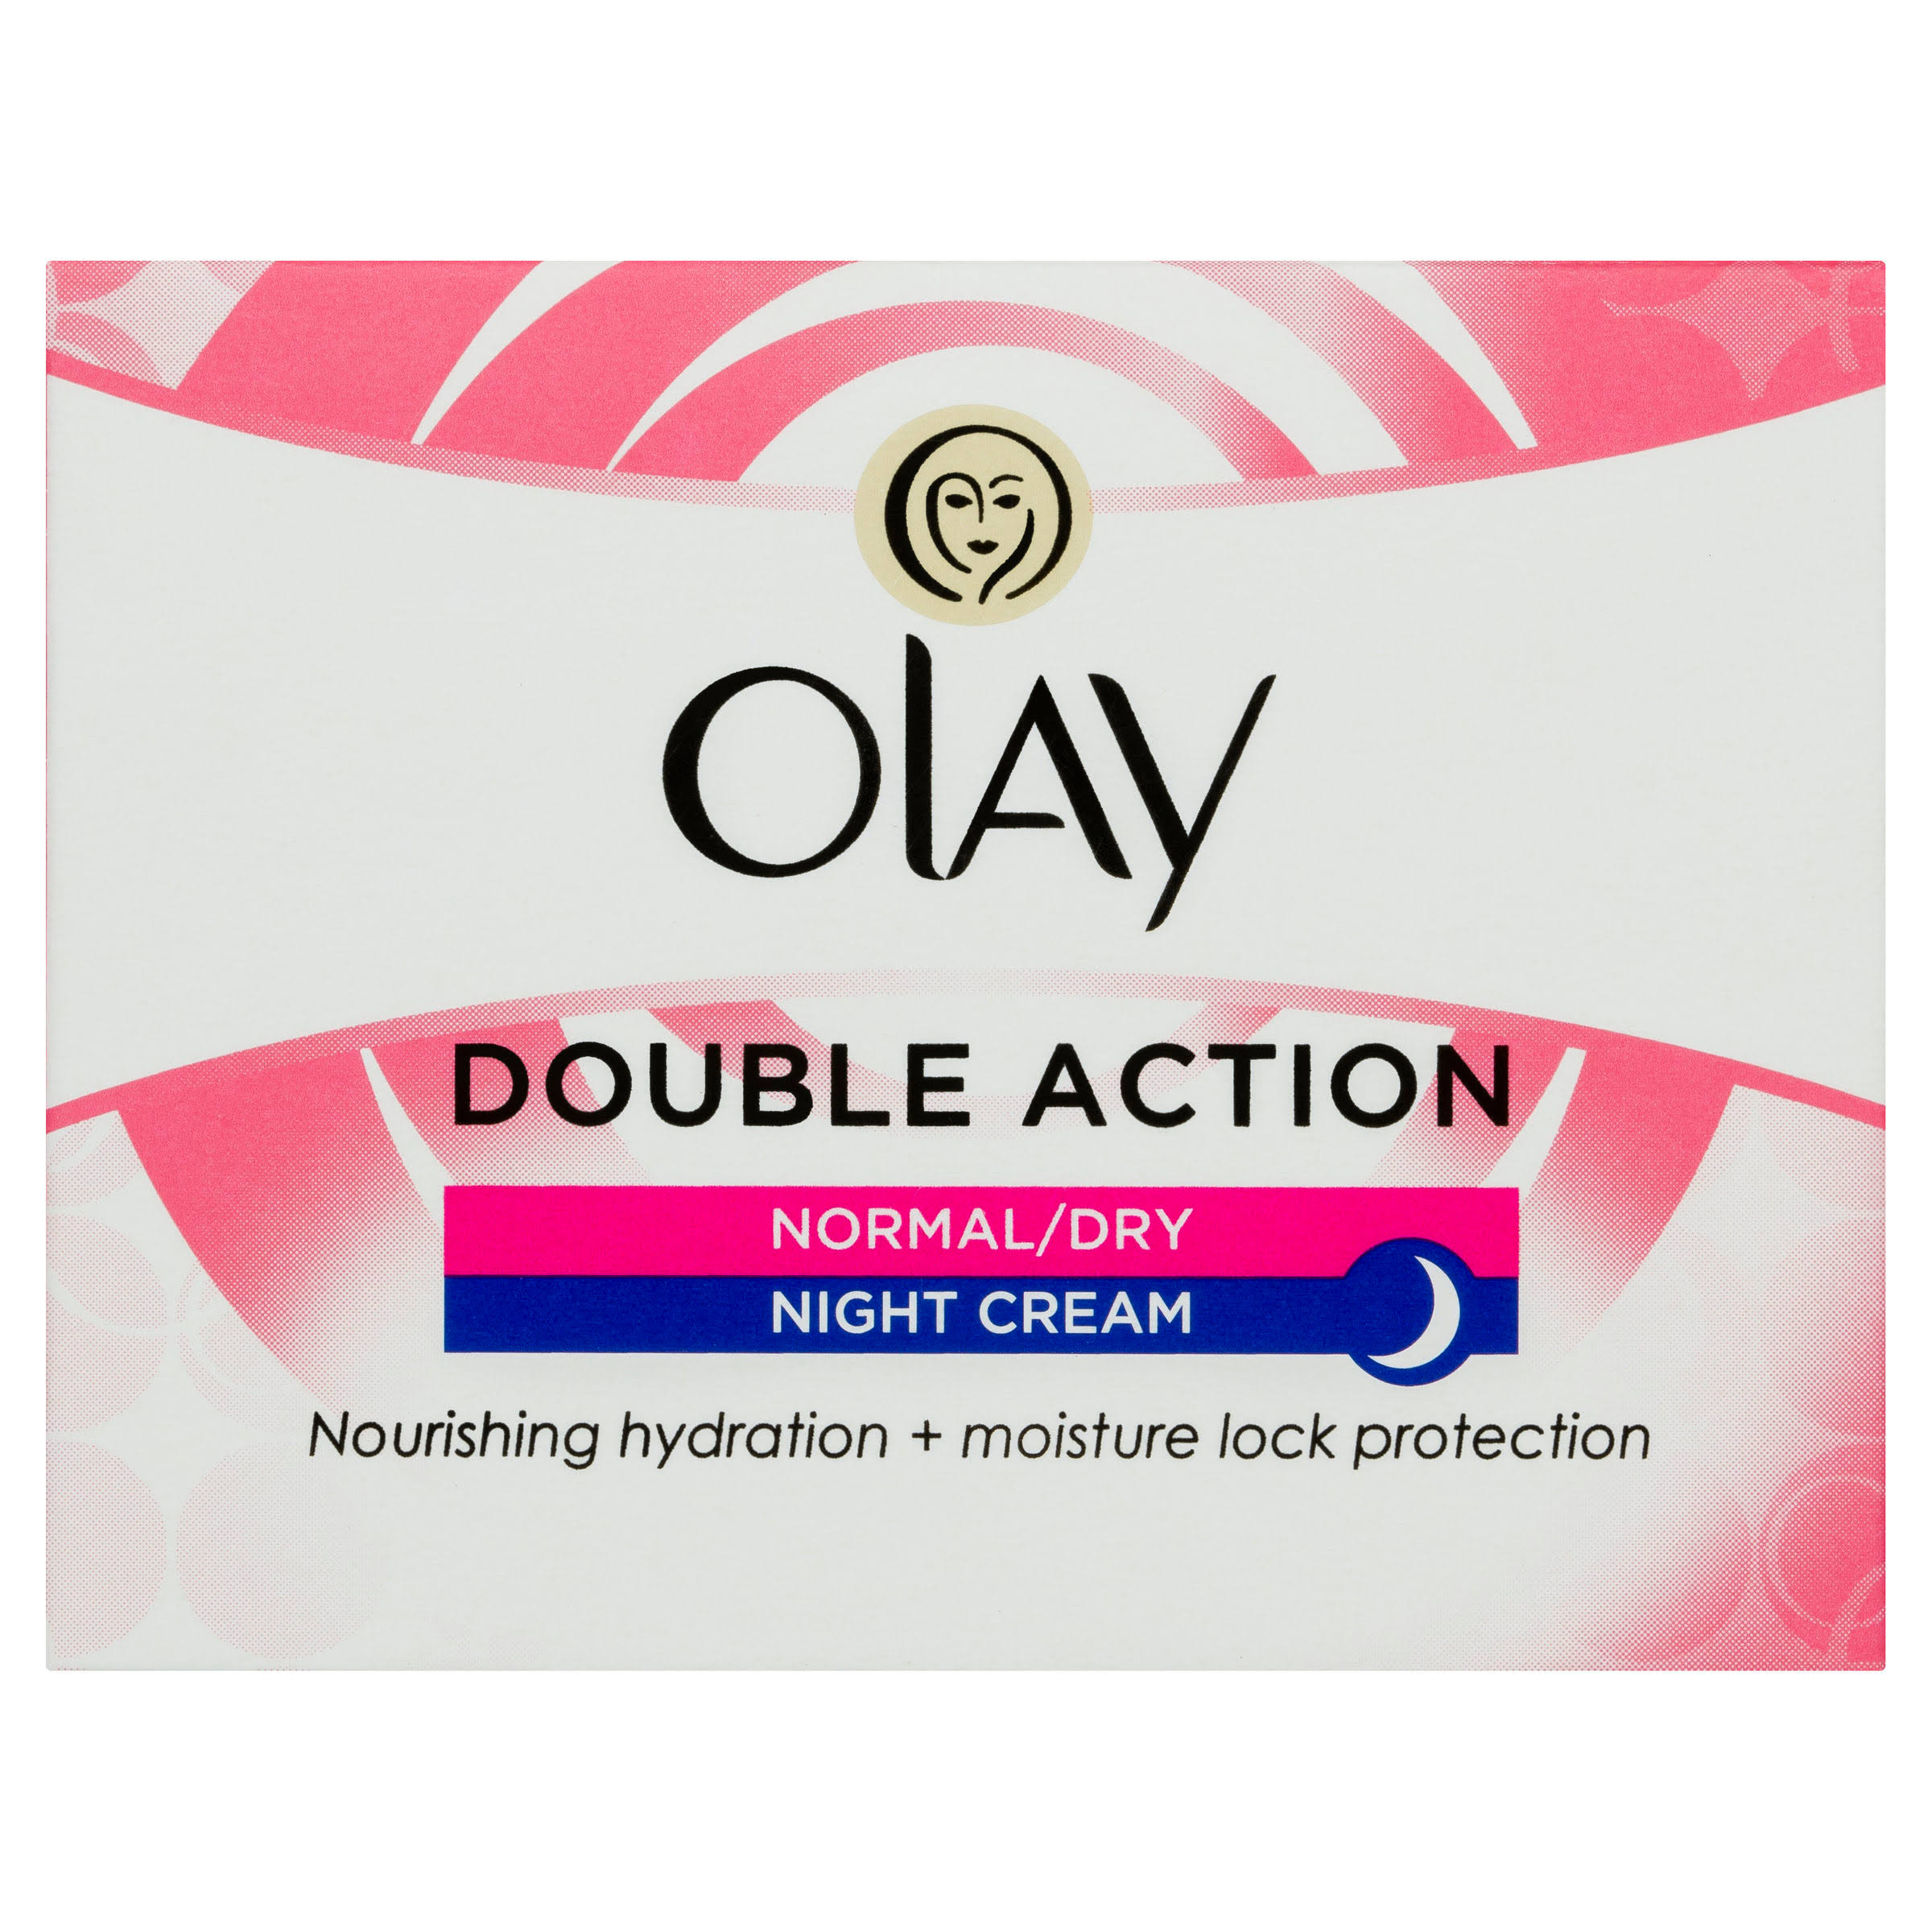 Olay Double Action Night Cream For Normal And Dry Skin - 50ml